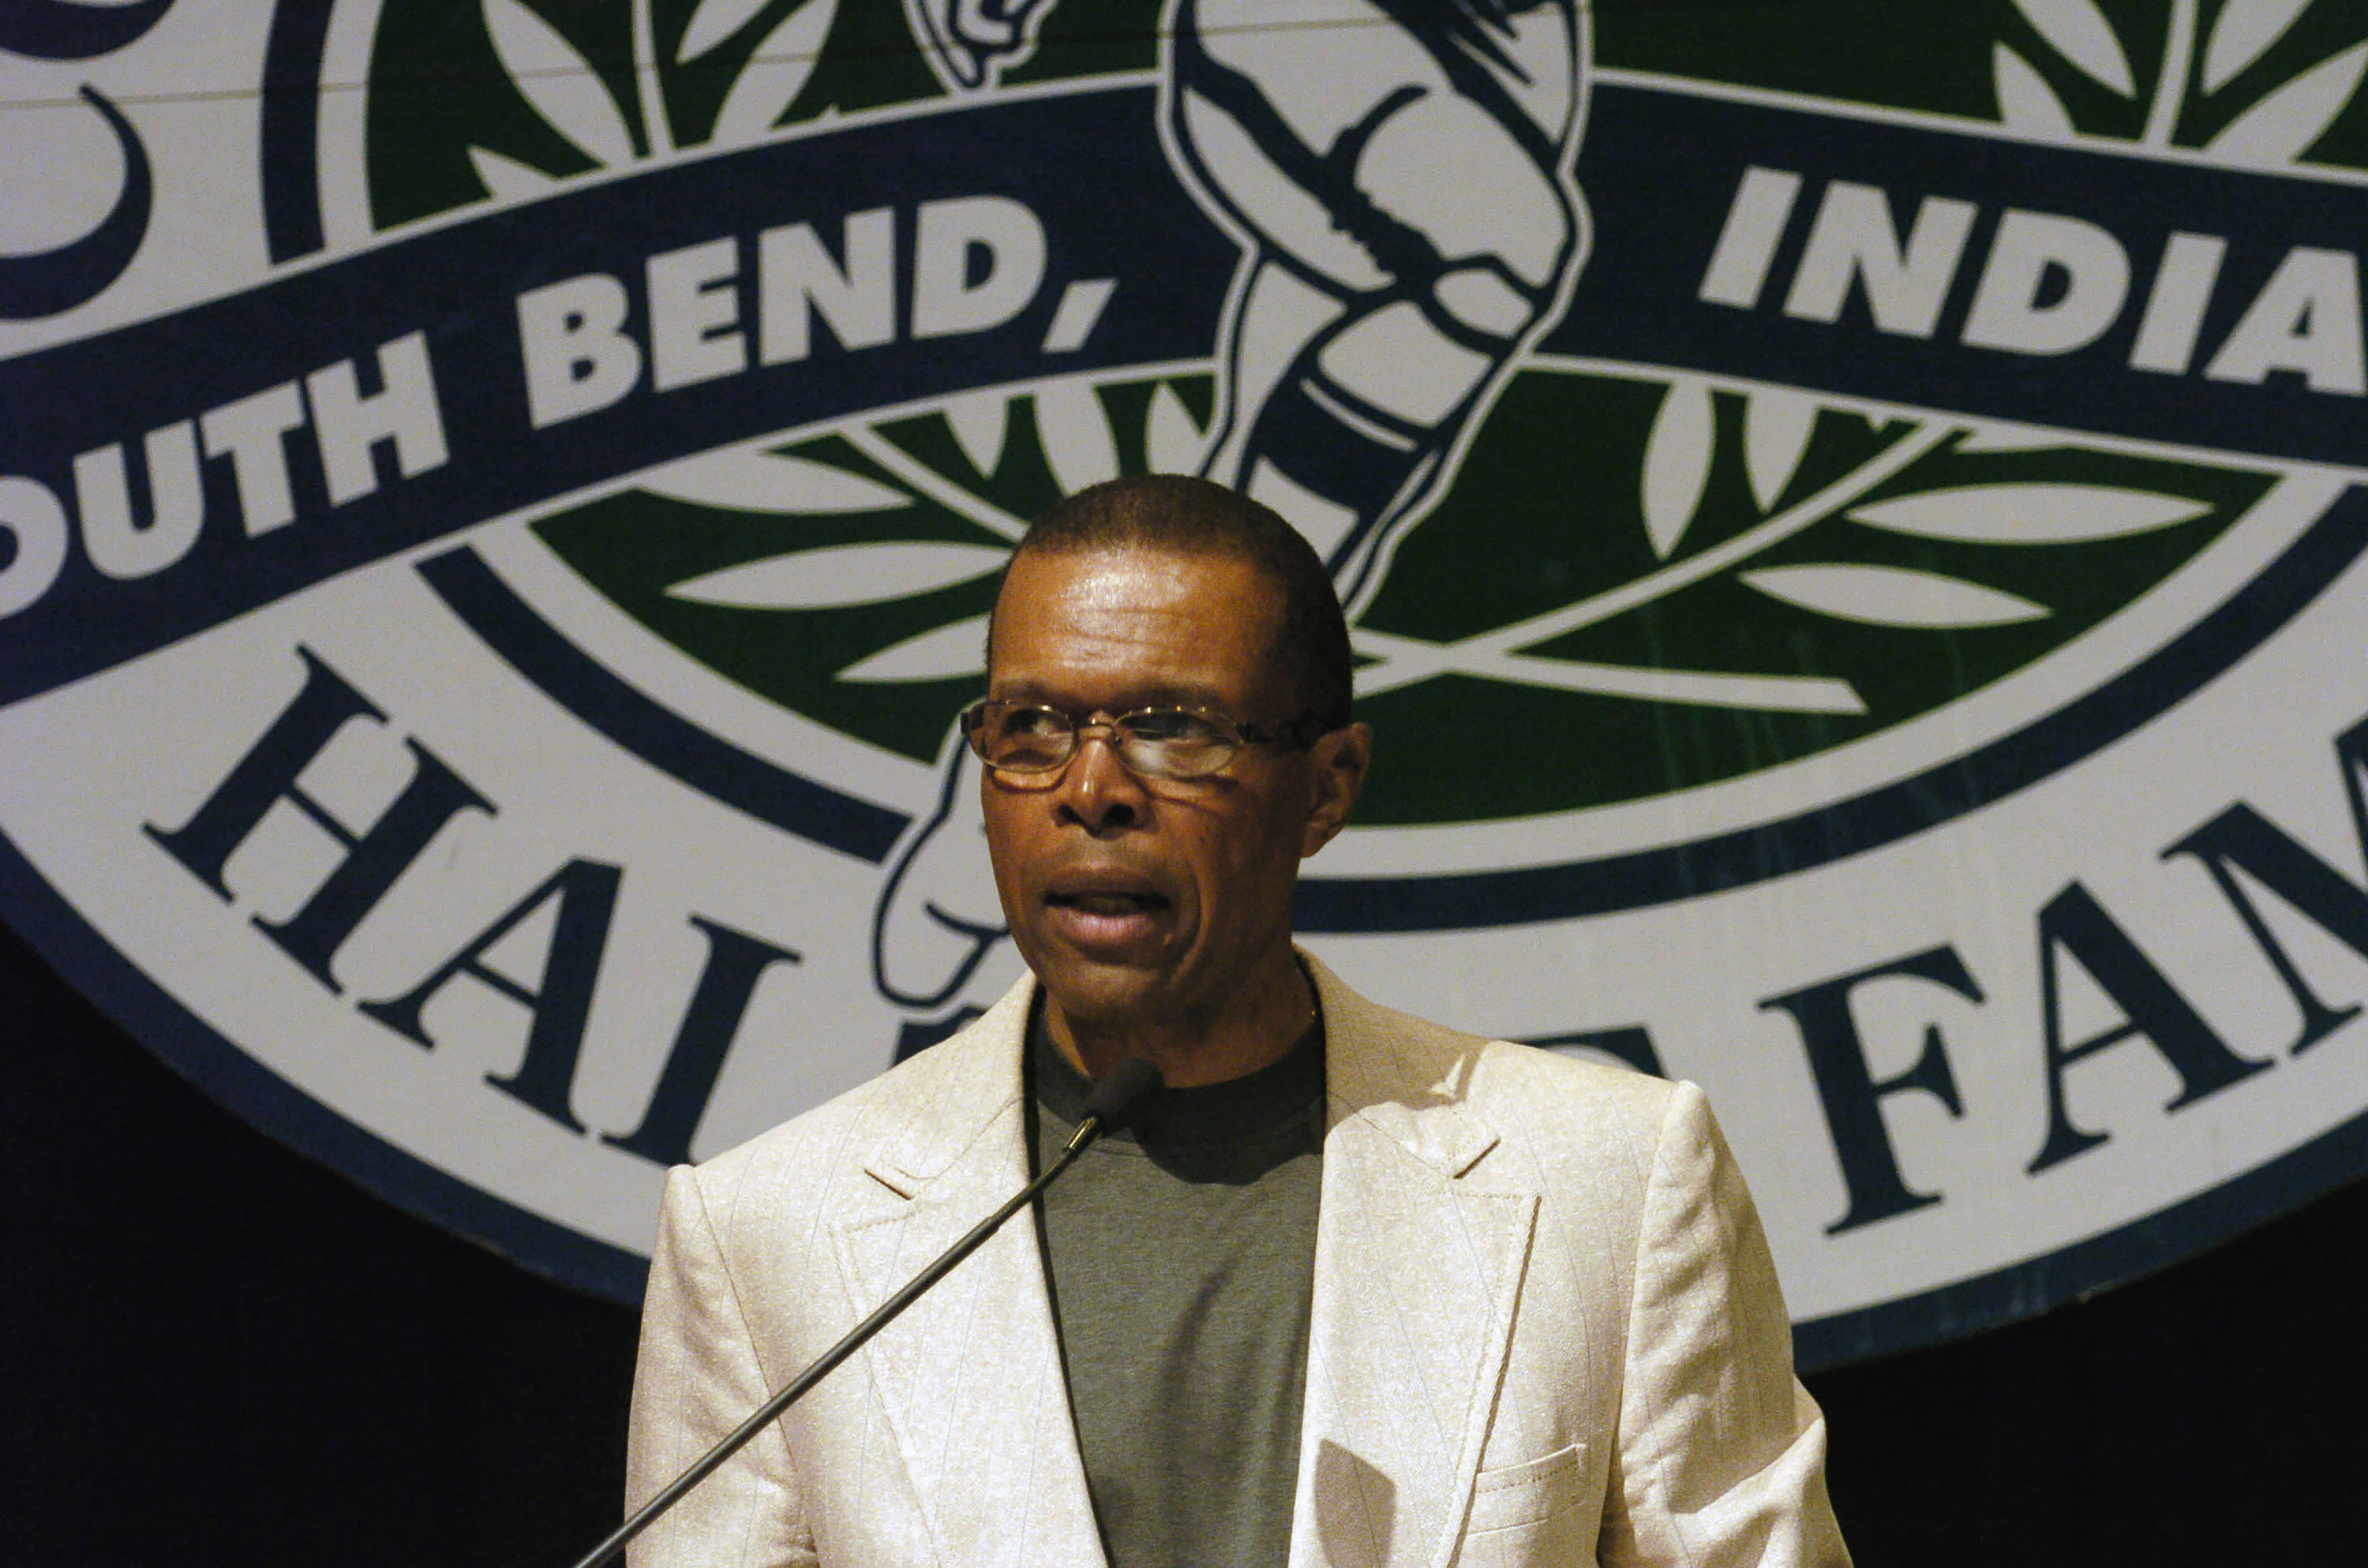 """FILE - In this June 2, 2004, file photo, Gale Sayers addresses a luncheon sponsored by the College Football Hall of Fall in South Bend, Ind. Hall of Famer Gale Sayers, who made his mark as one of the NFL's best all-purpose running backs and was later celebrated for his enduring friendship with a Chicago Bears teammate with cancer, has died. He was 77. Nicknamed """"The Kansas Comet"""" and considered among the best open-field runners the game has ever seen, Sayers died Wednesday, Sept. 23, 2020, according to the Pro Football Hall of Fame. (AP Photo/Joe Raymond, File)"""